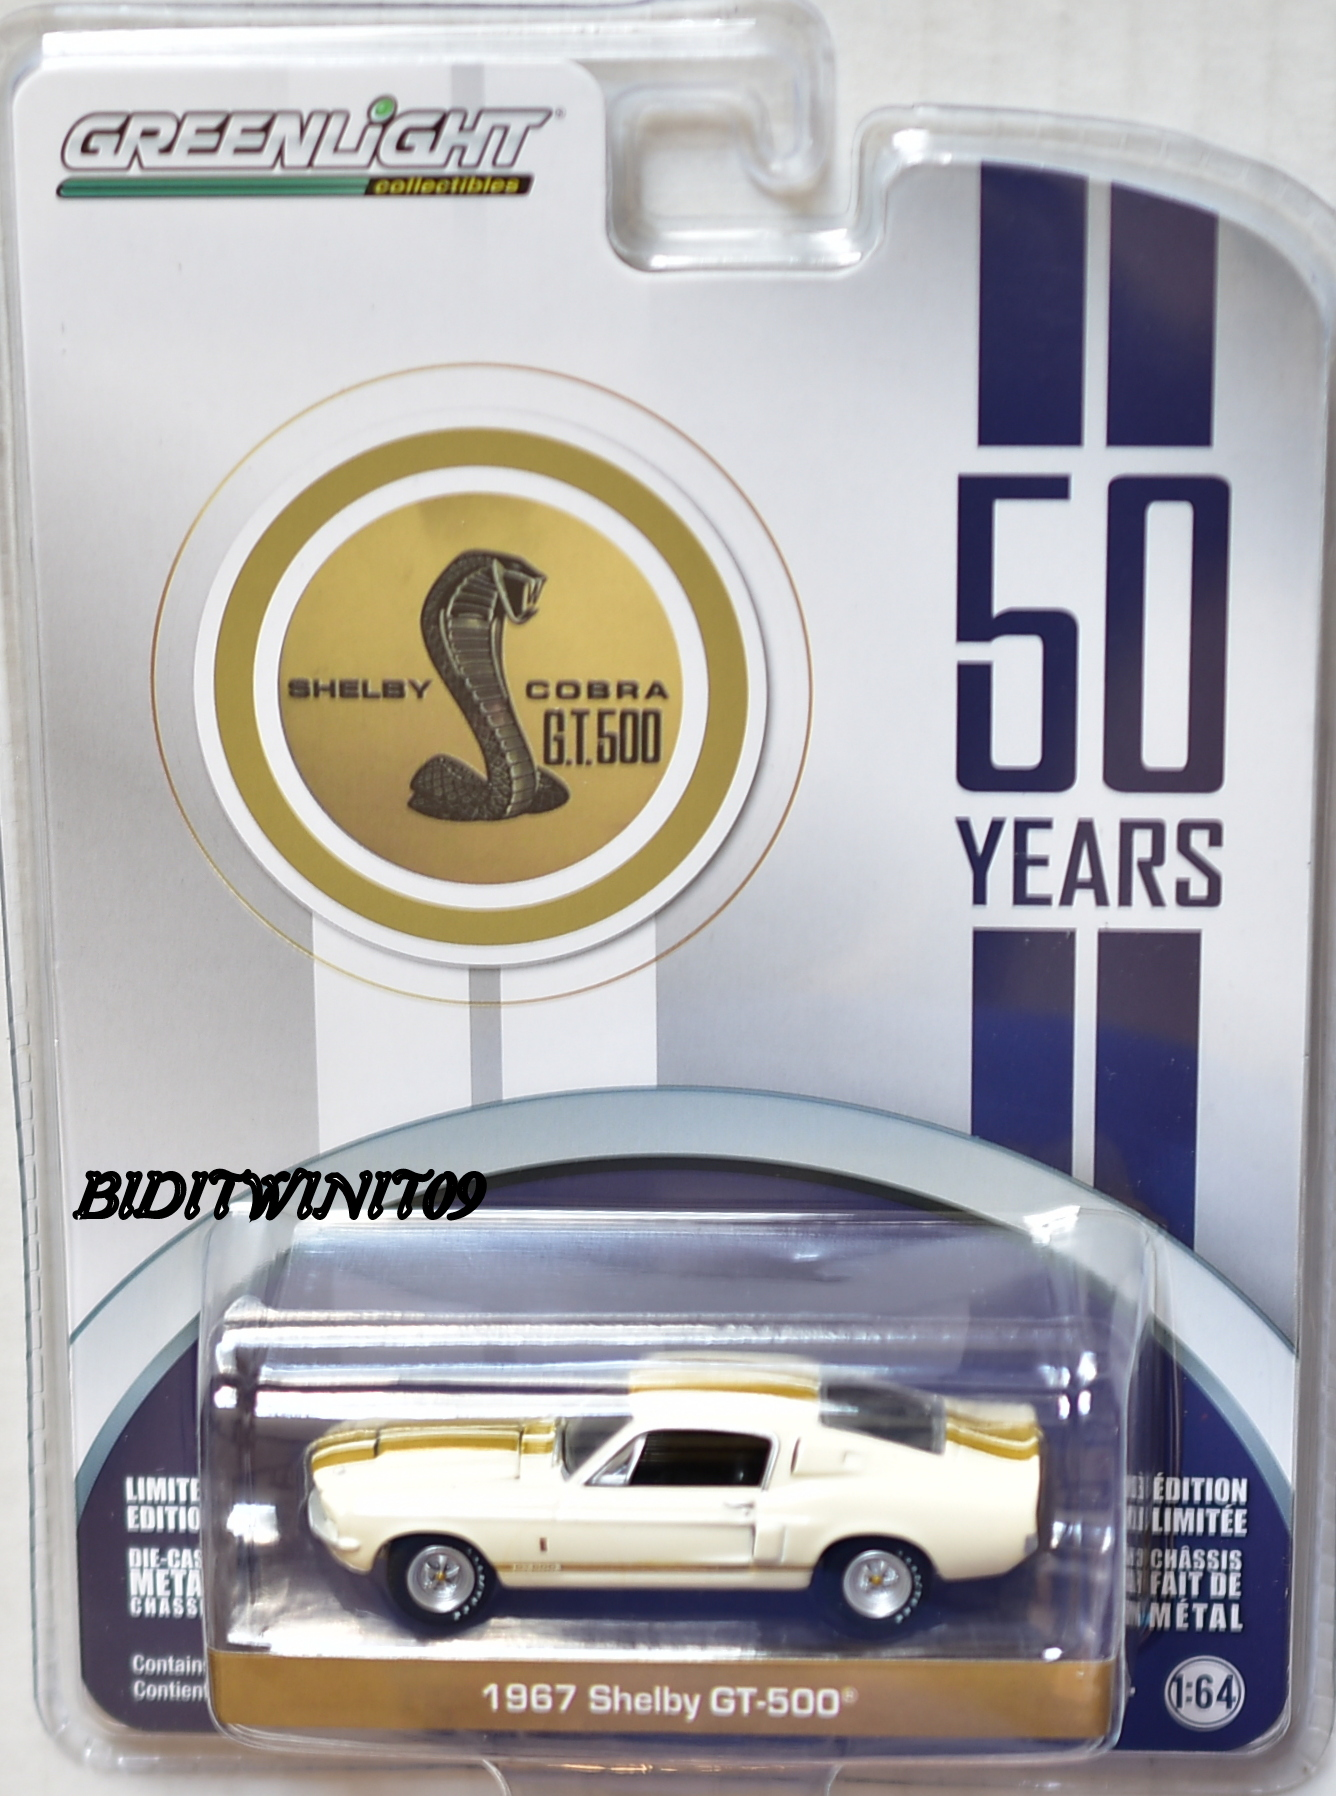 GREENLIGHT 2017 50 YEARS 1967 SHELBY GT-500